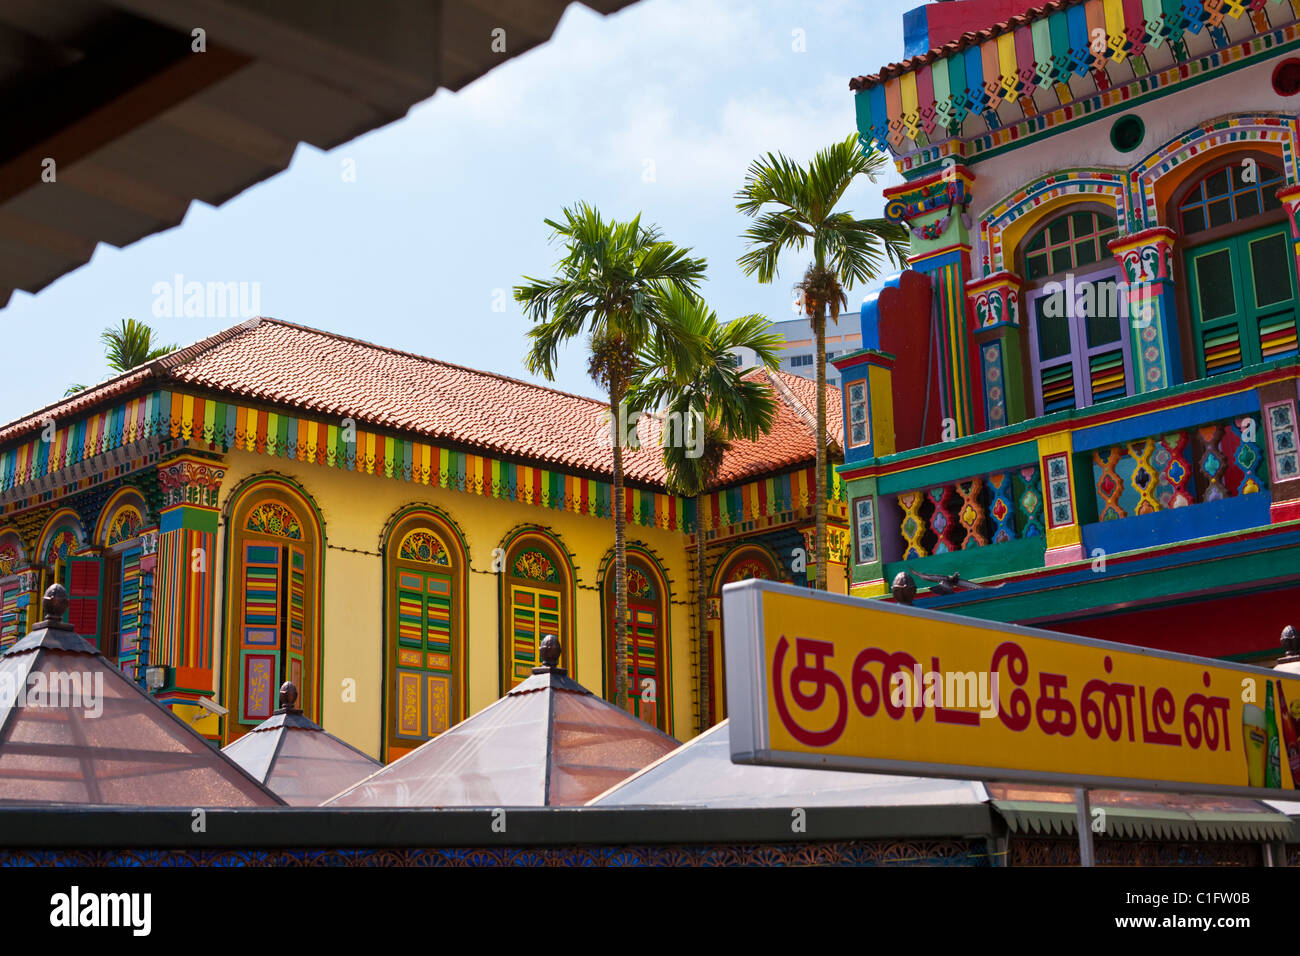 Colourful heritage buildings in Little India Singapore - Stock Image